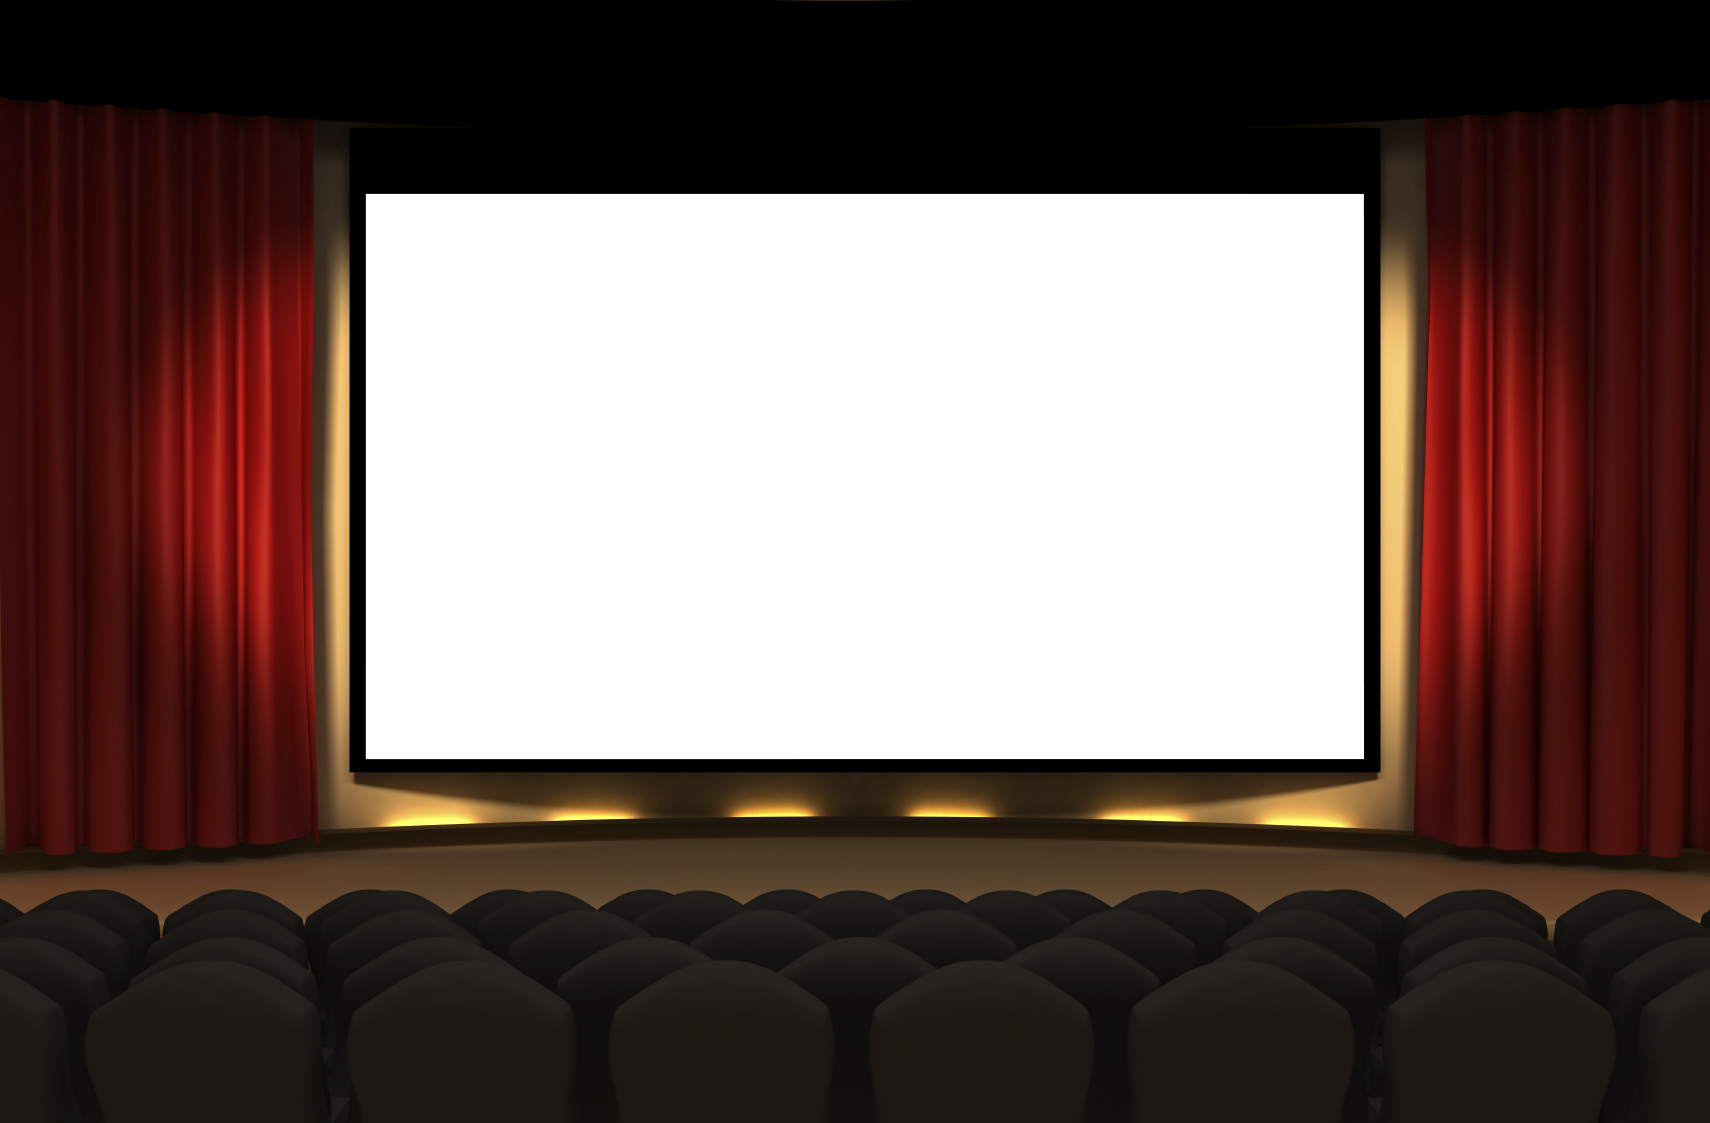 Theatre clipart cinema screen The — Screen Why Hitting